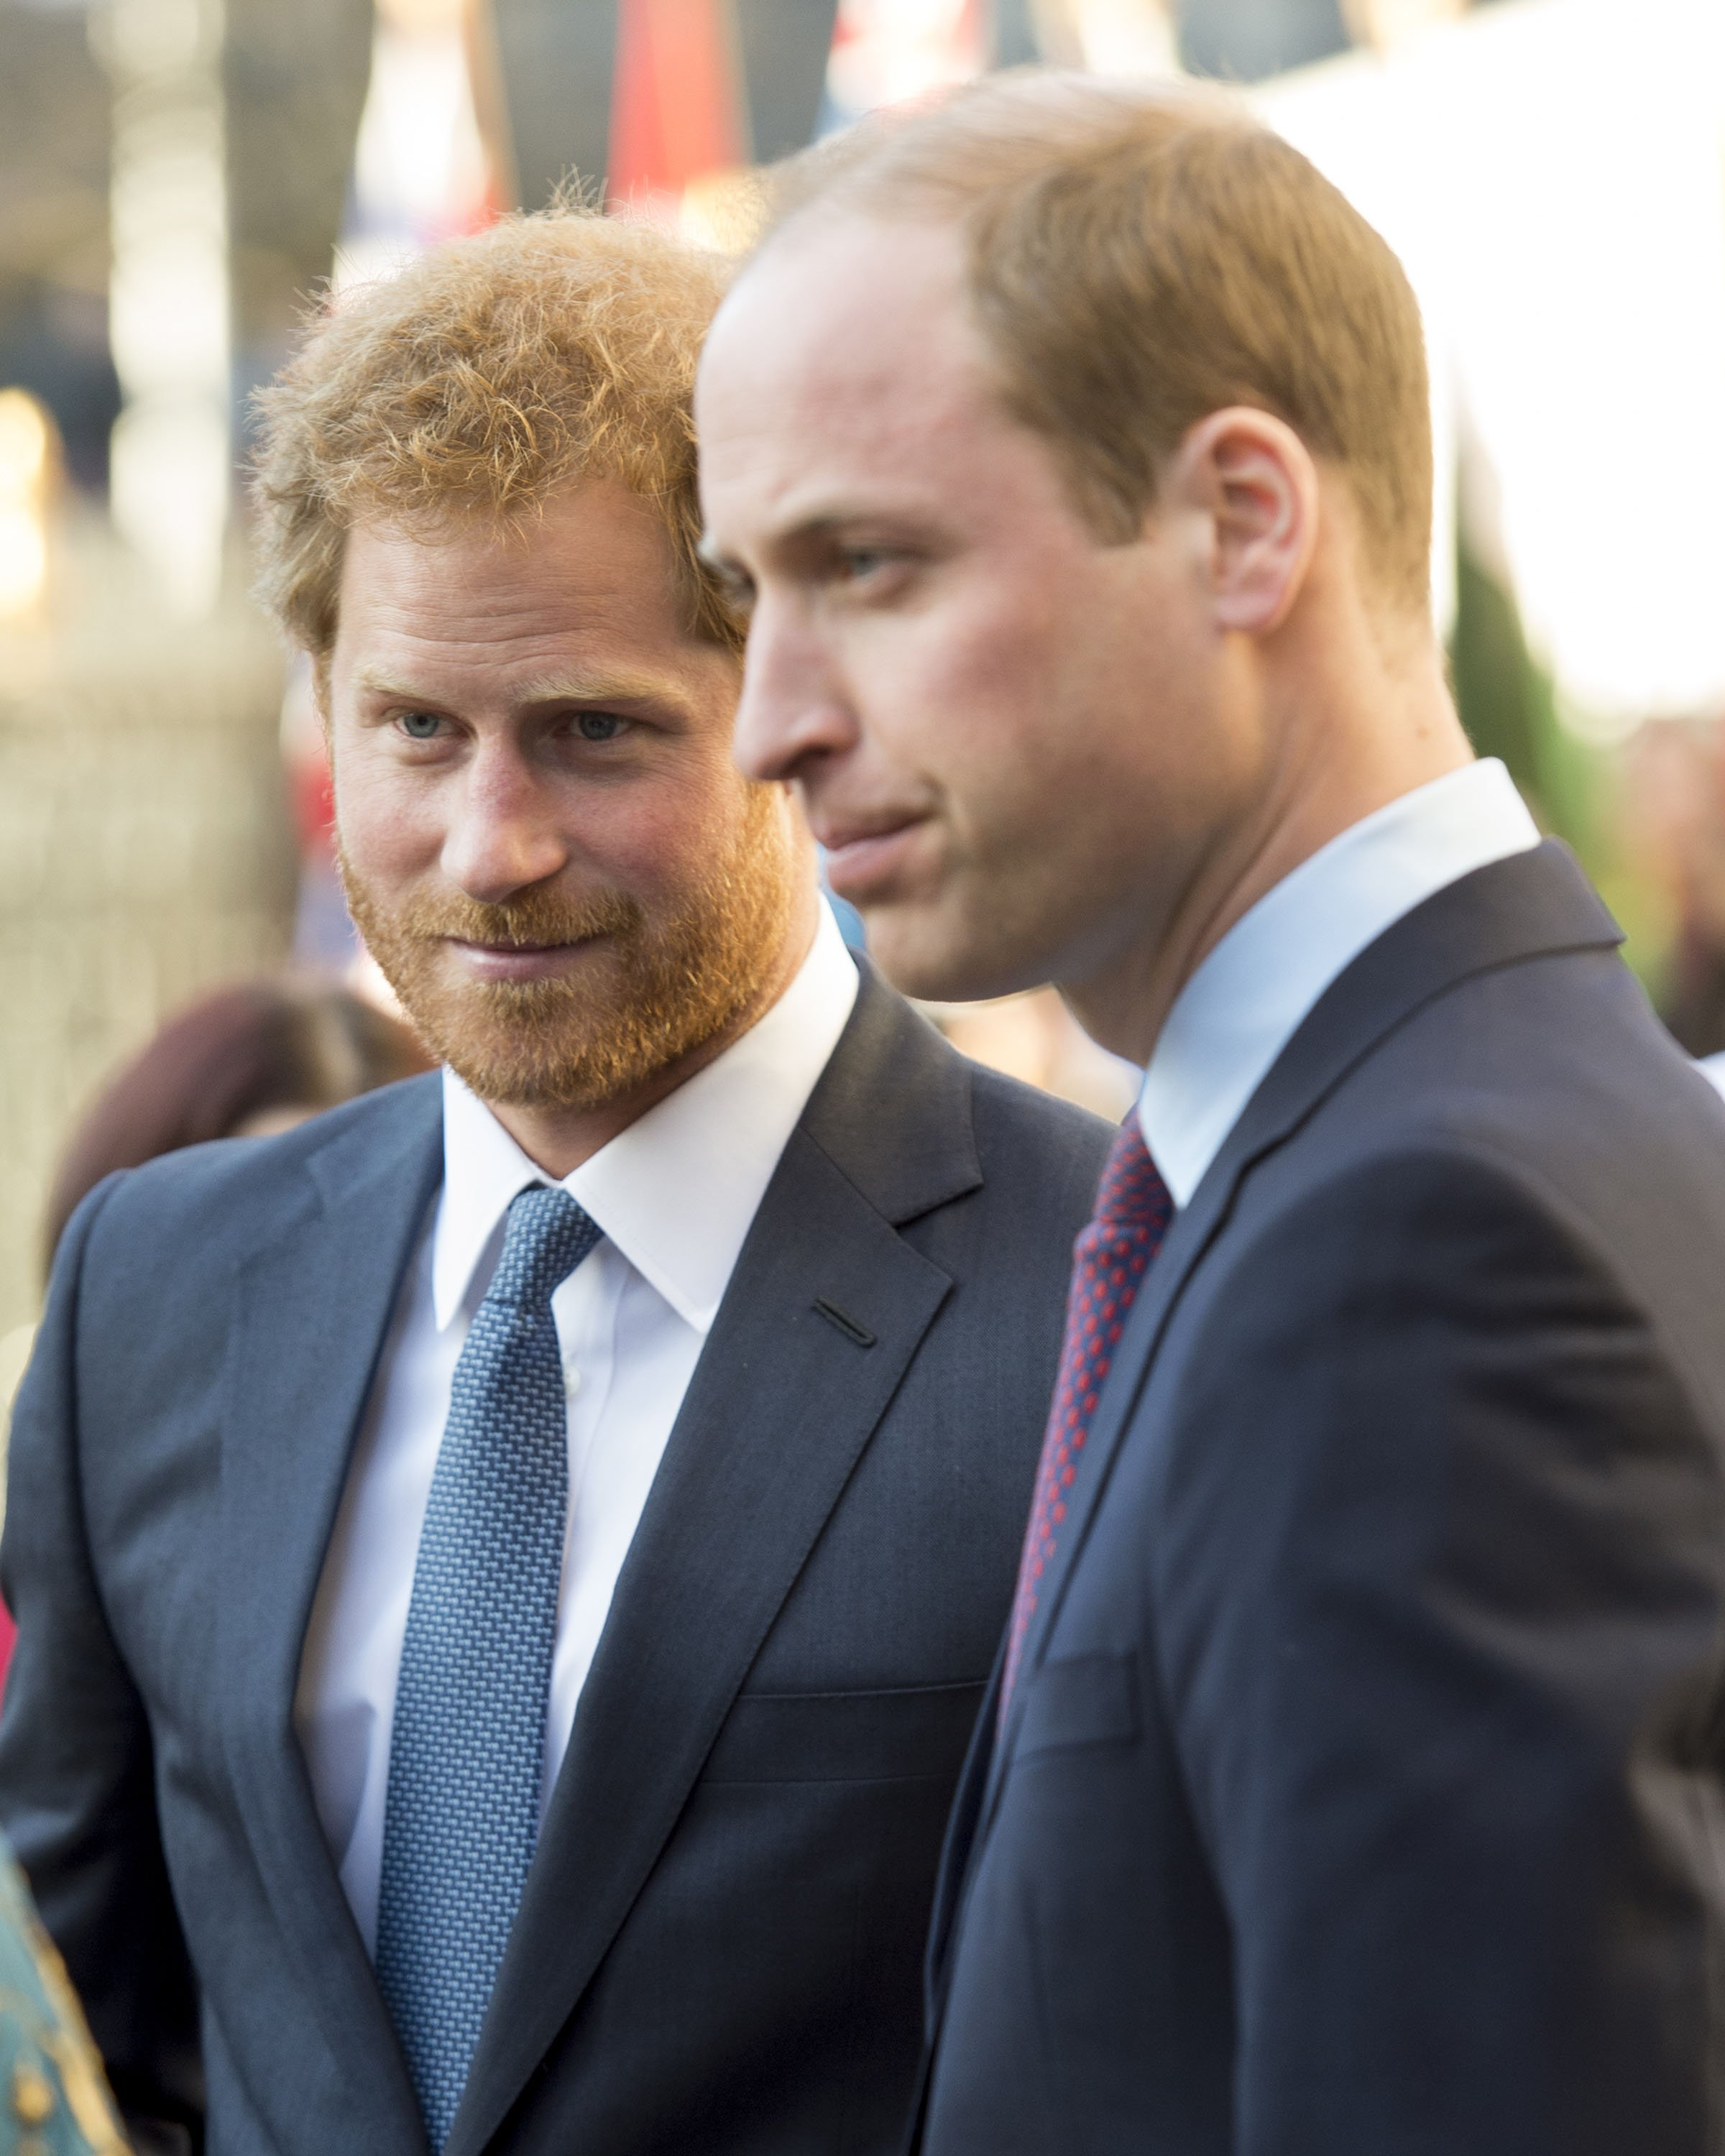 Prince Harry and Prince William attend the Commonwealth Observance Day Service on March 14, 2016 in London, United Kingdom | Photo: Getty Images